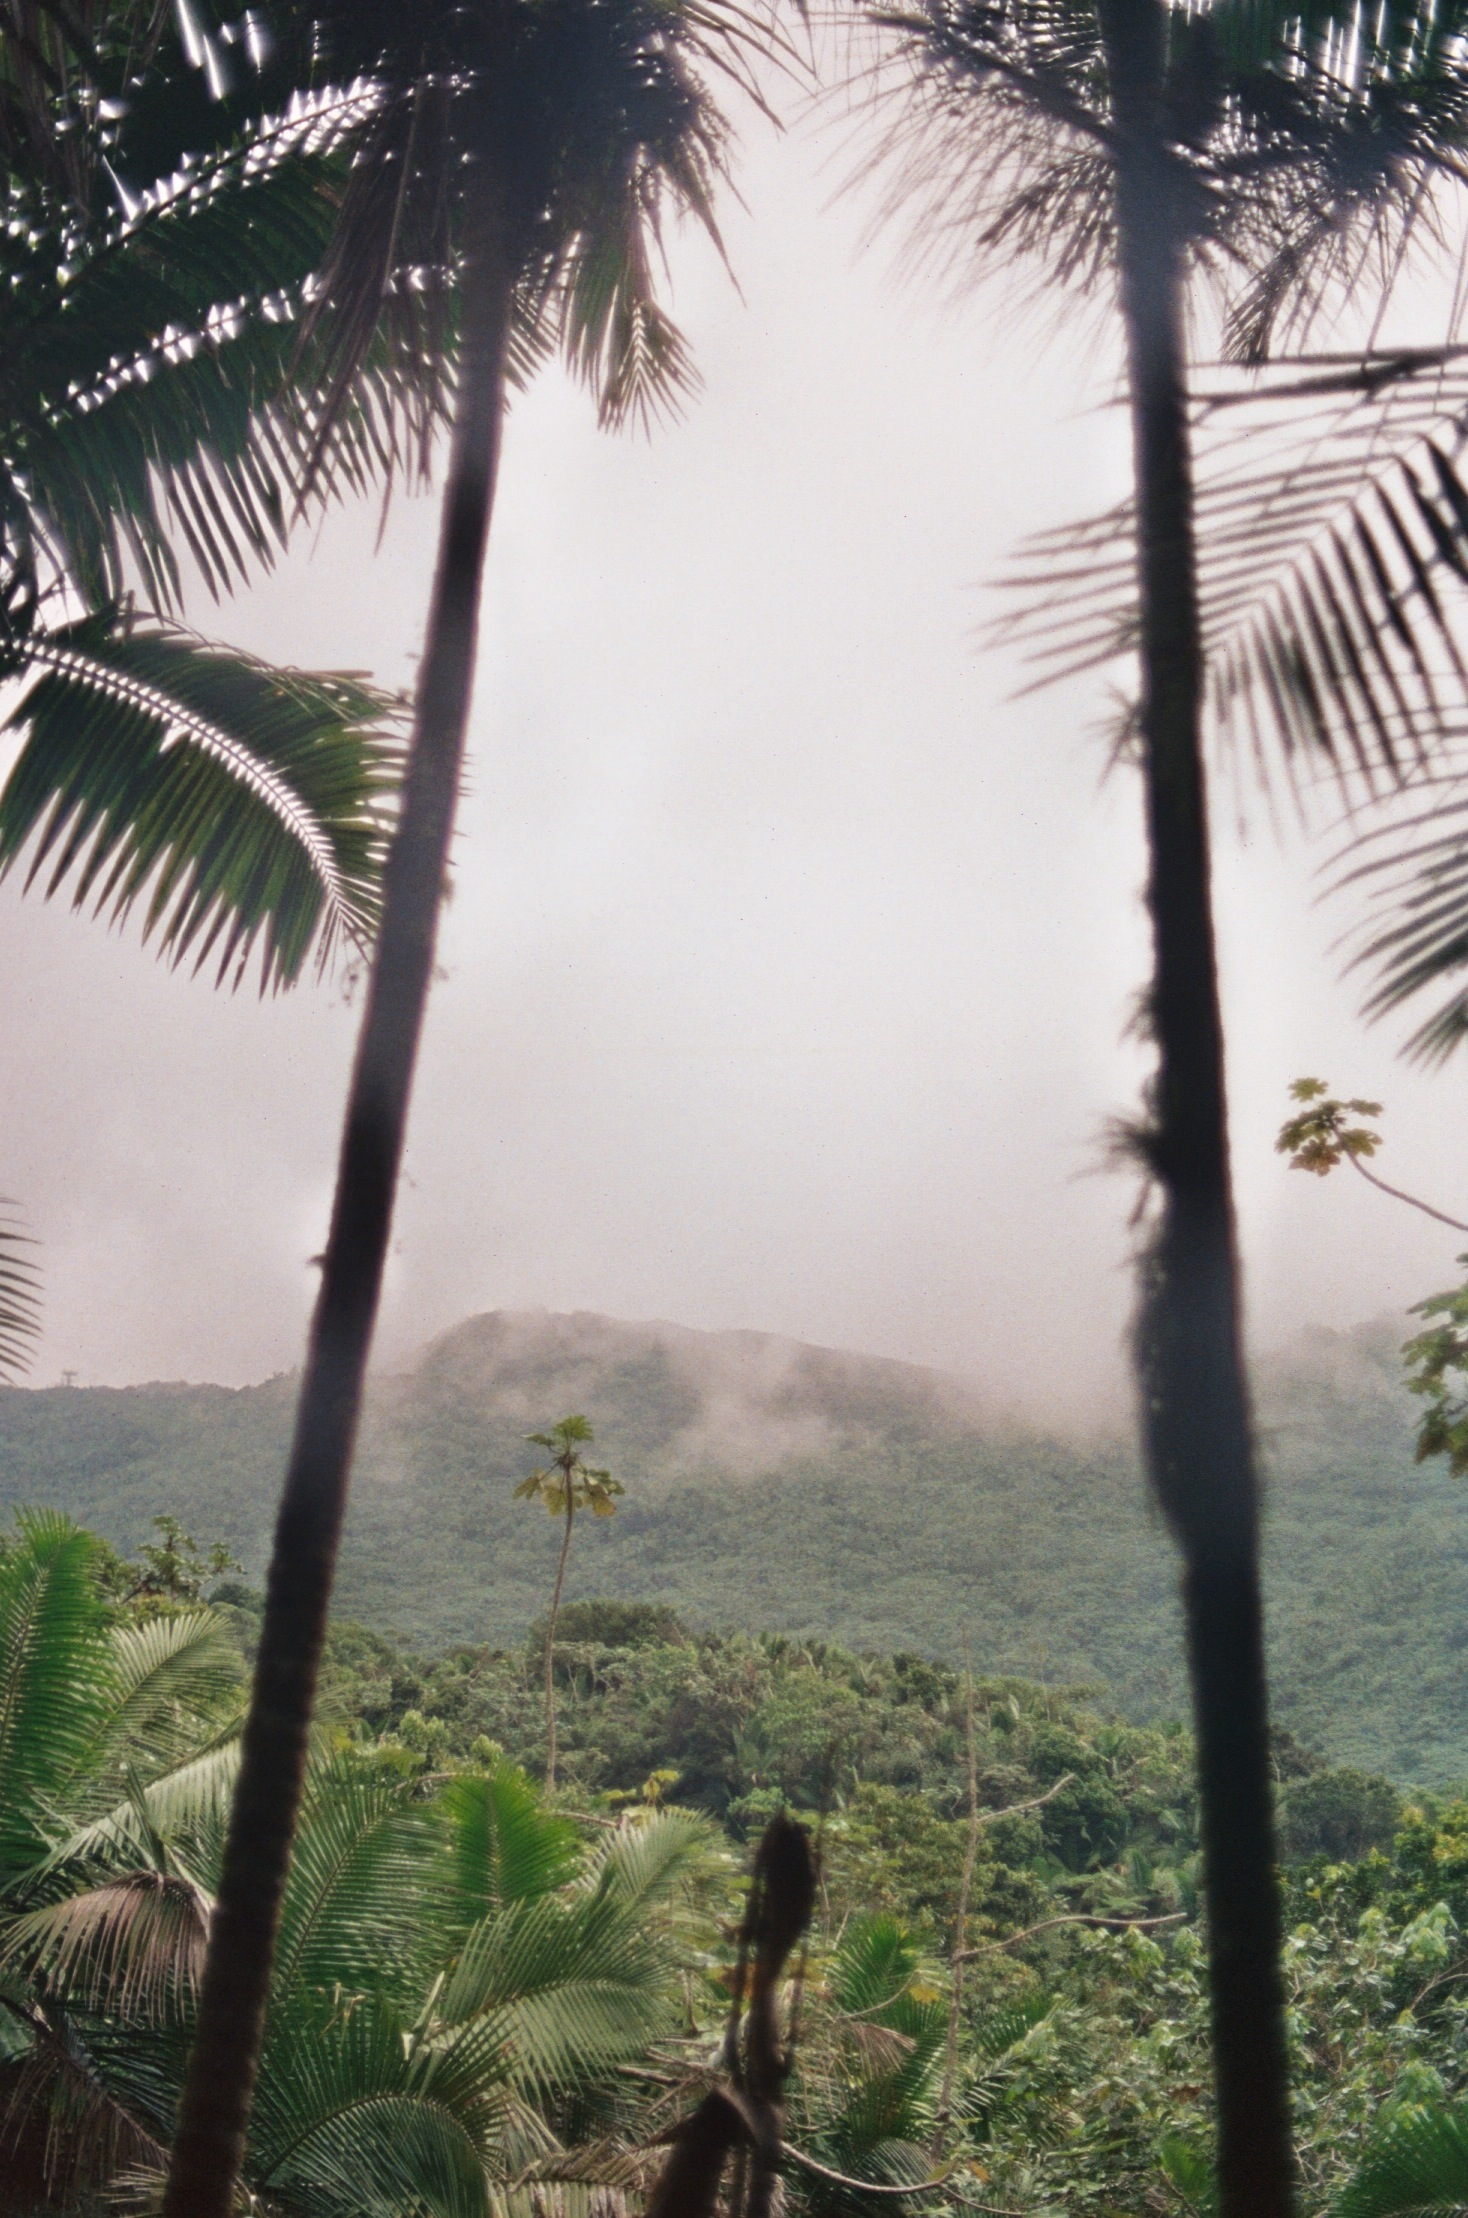 Jungle View from Above Puerto Rico